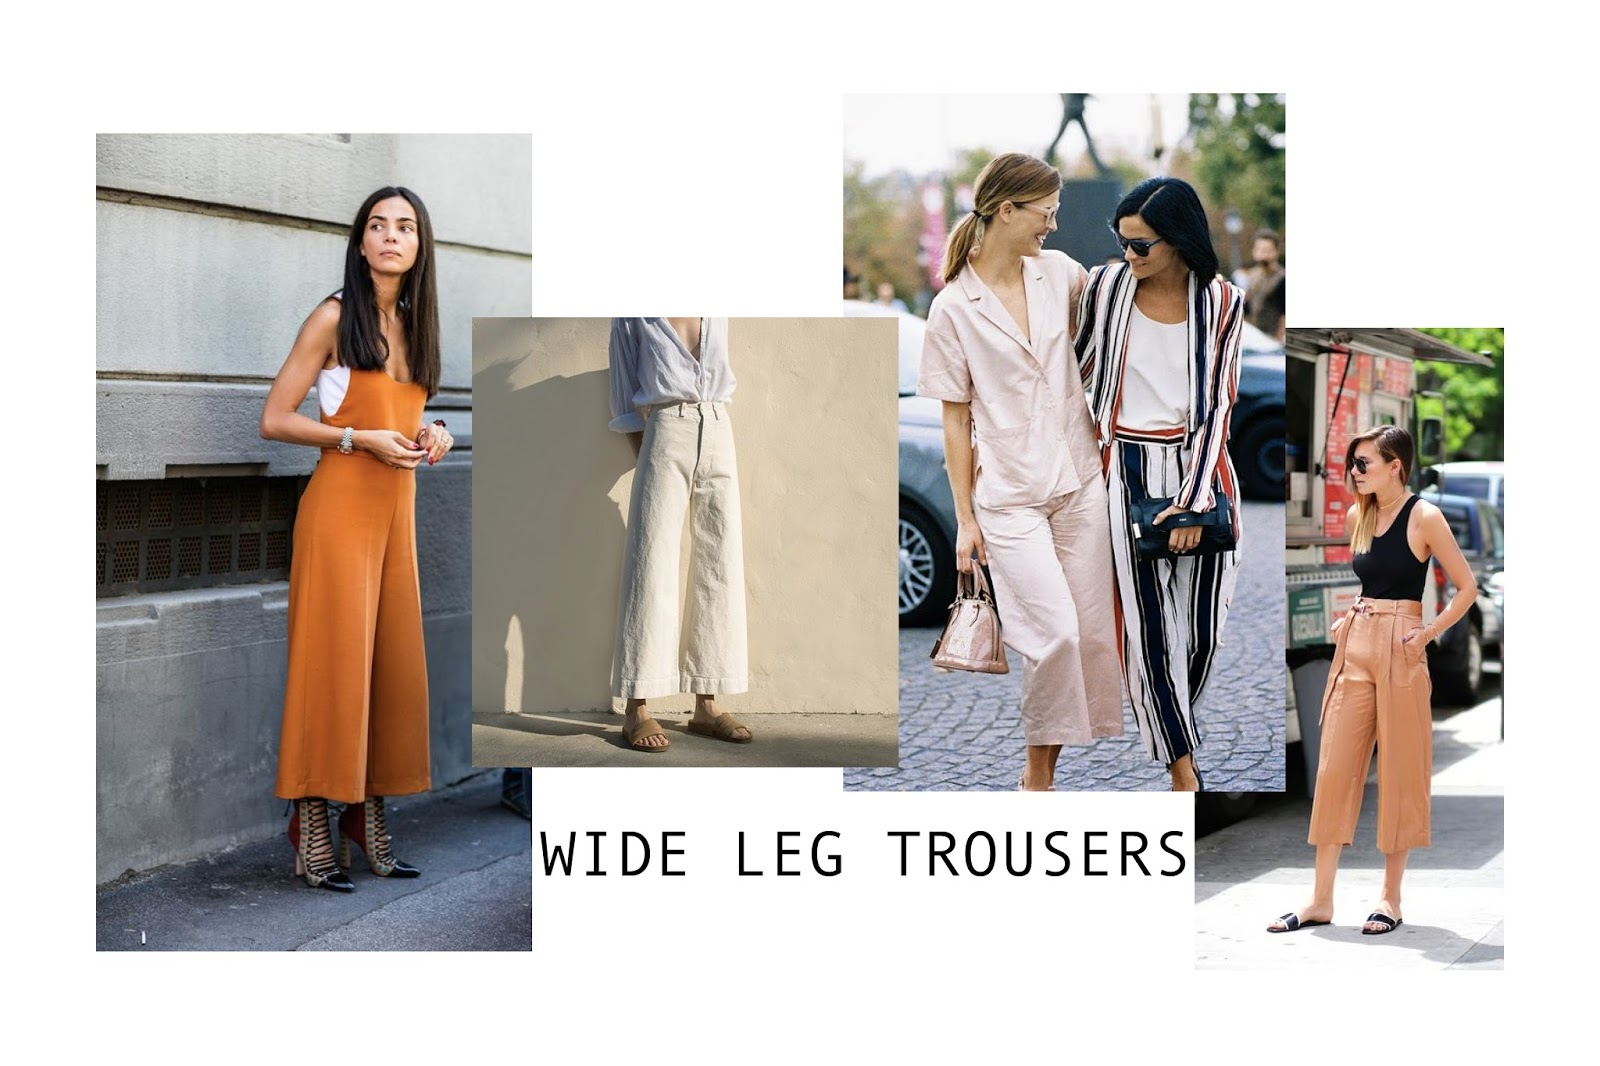 wide leg trousers, culottes, palazzo pants, jumpsuit, fashion blogger, pinterest, girl from north london